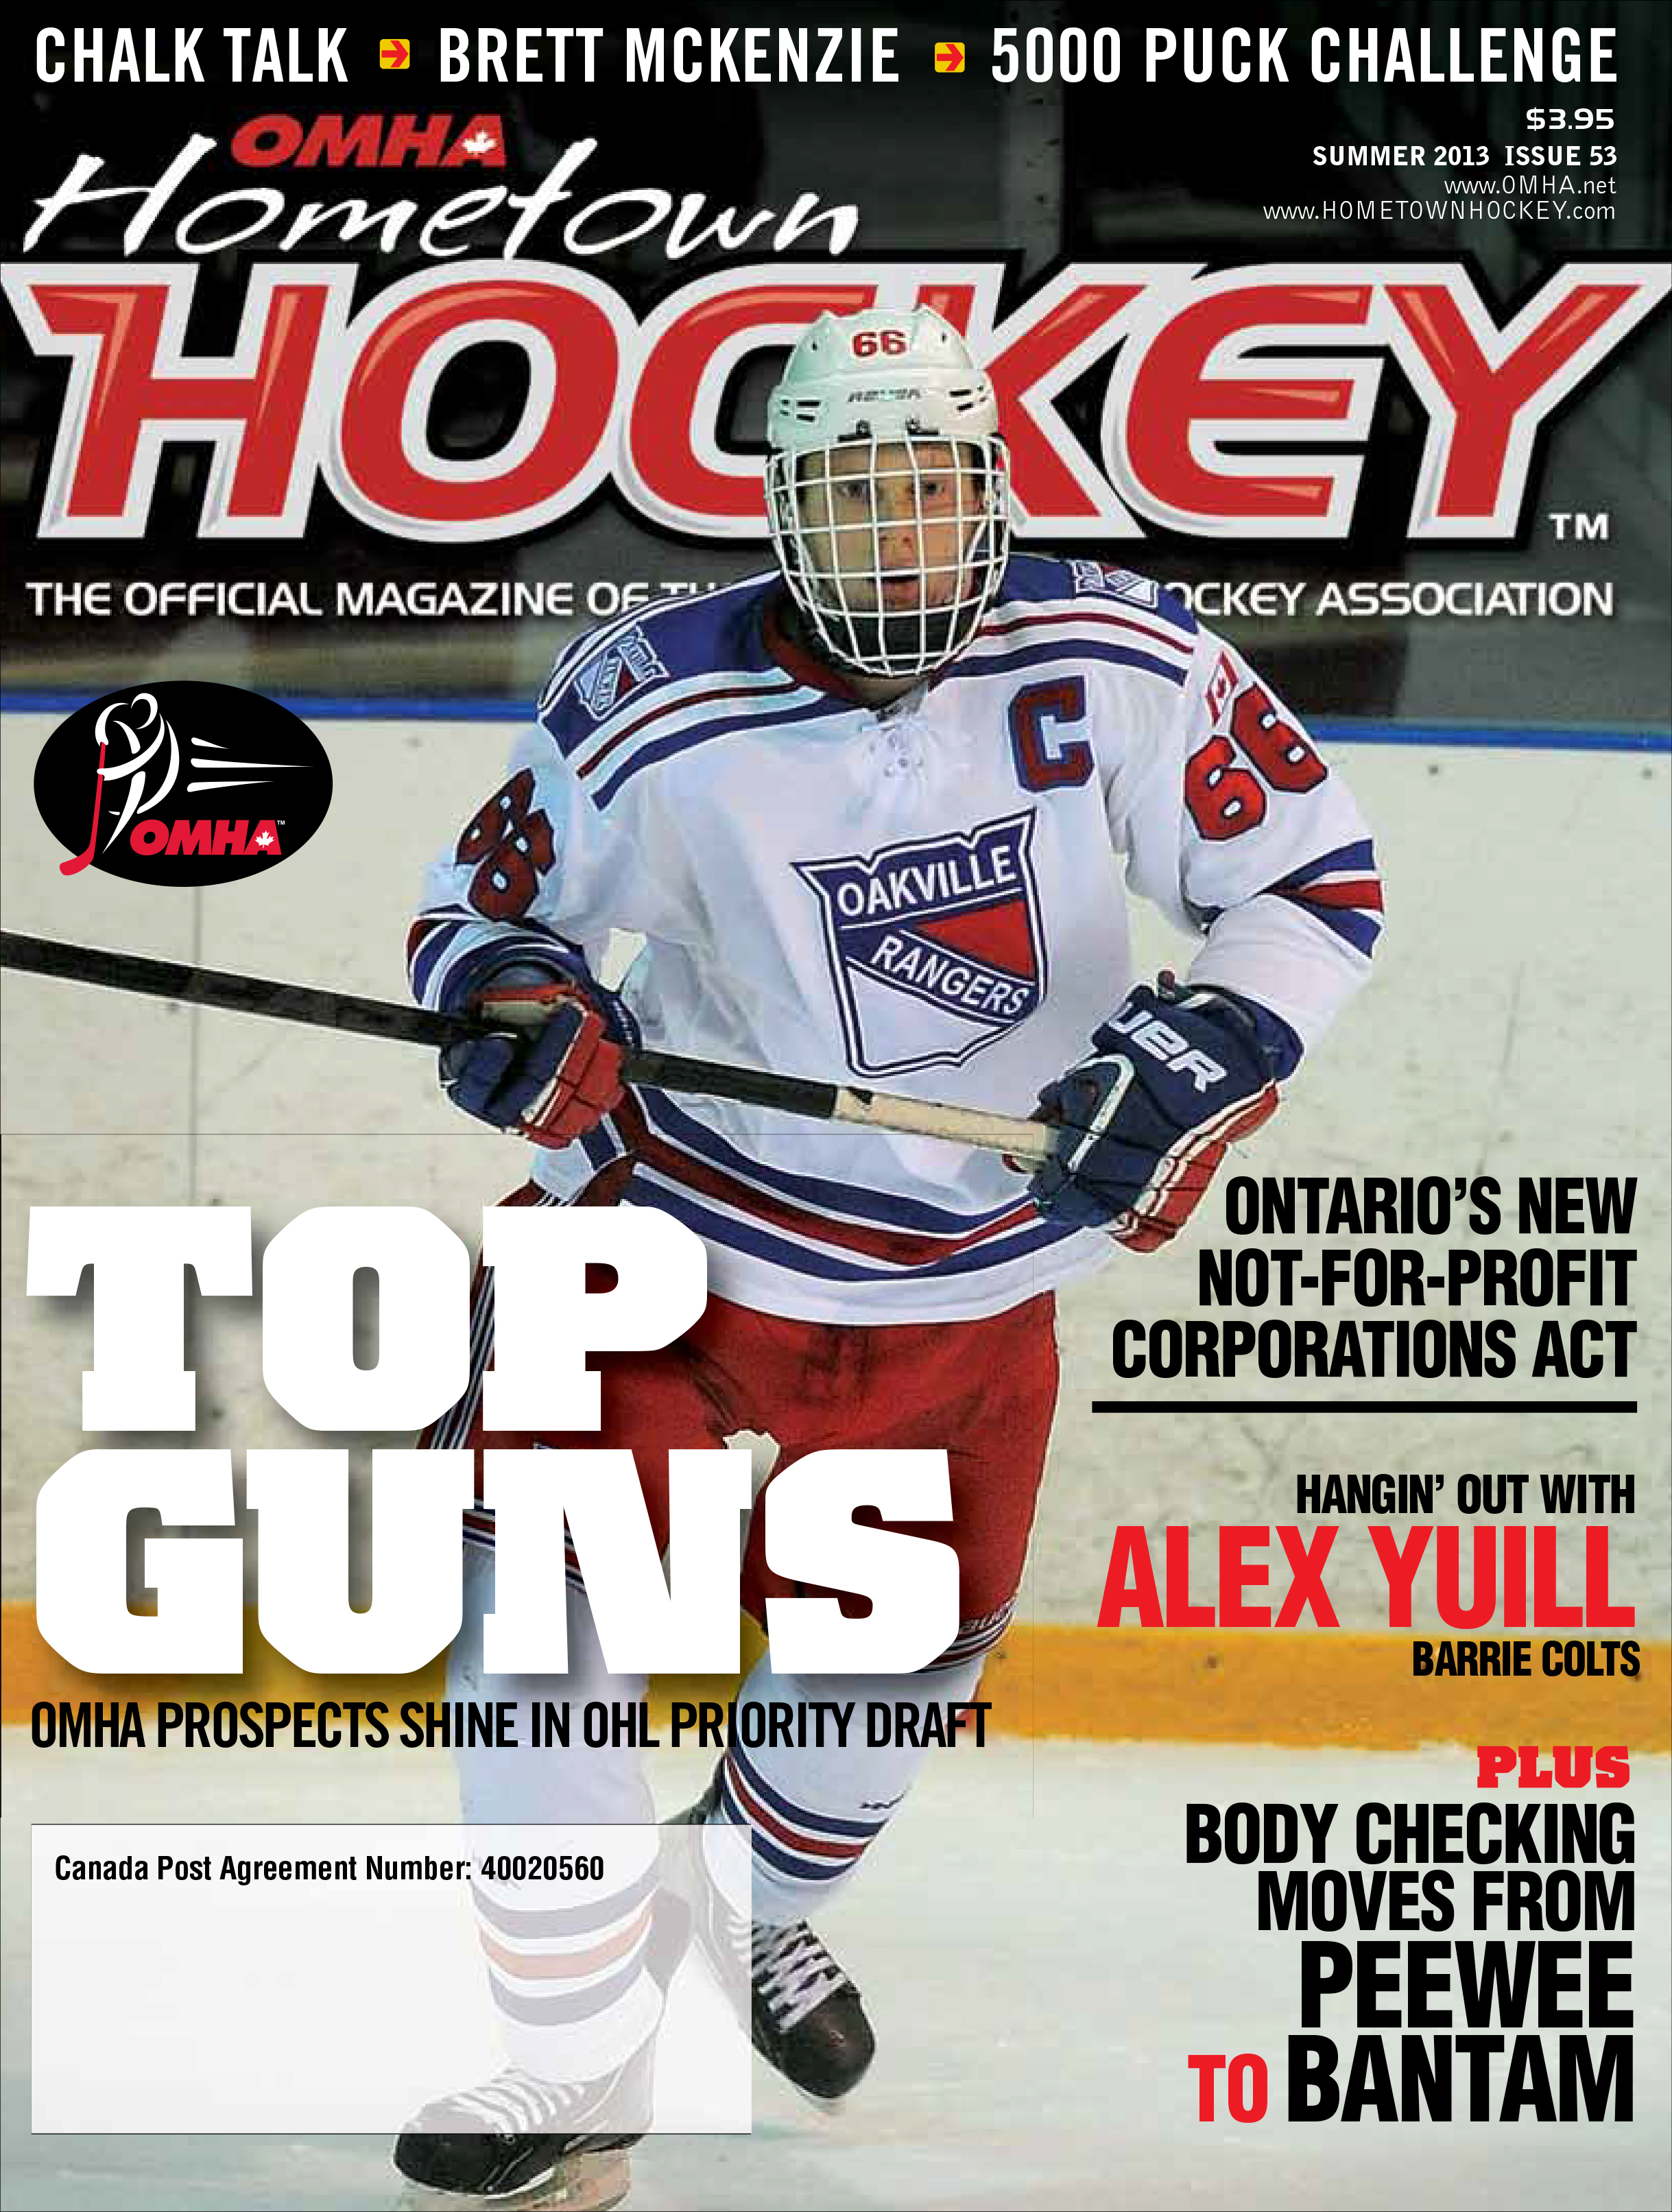 OMHA Hometown Hockey Spring 2013